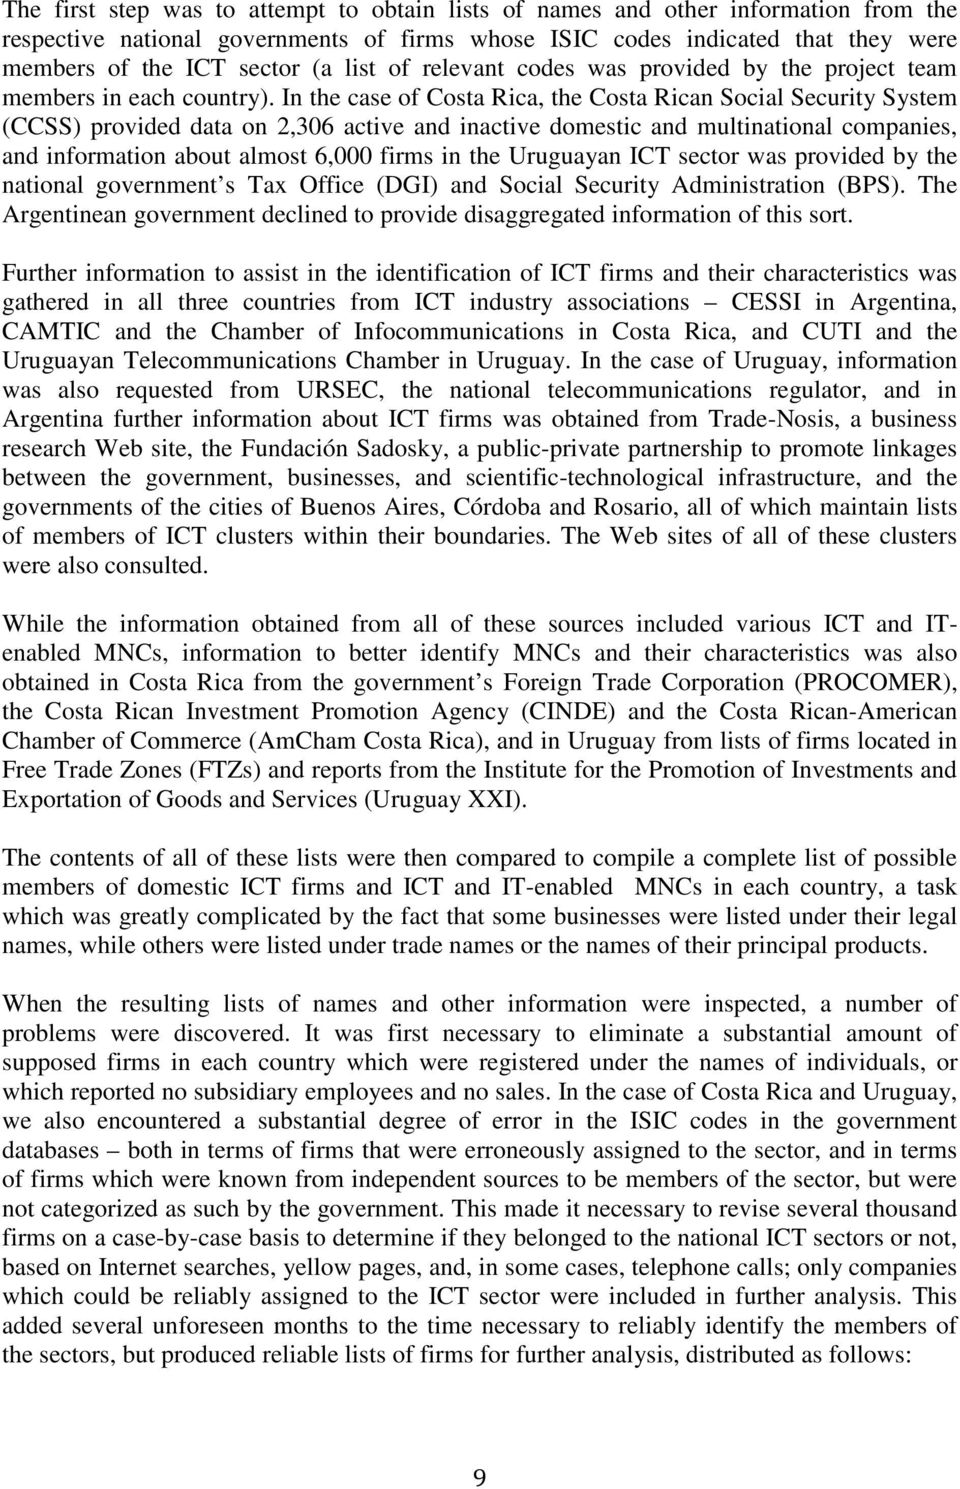 In the case of Costa Rica, the Costa Rican Social Security System (CCSS) provided data on 2,306 active and inactive domestic and multinational companies, and information about almost 6,000 firms in